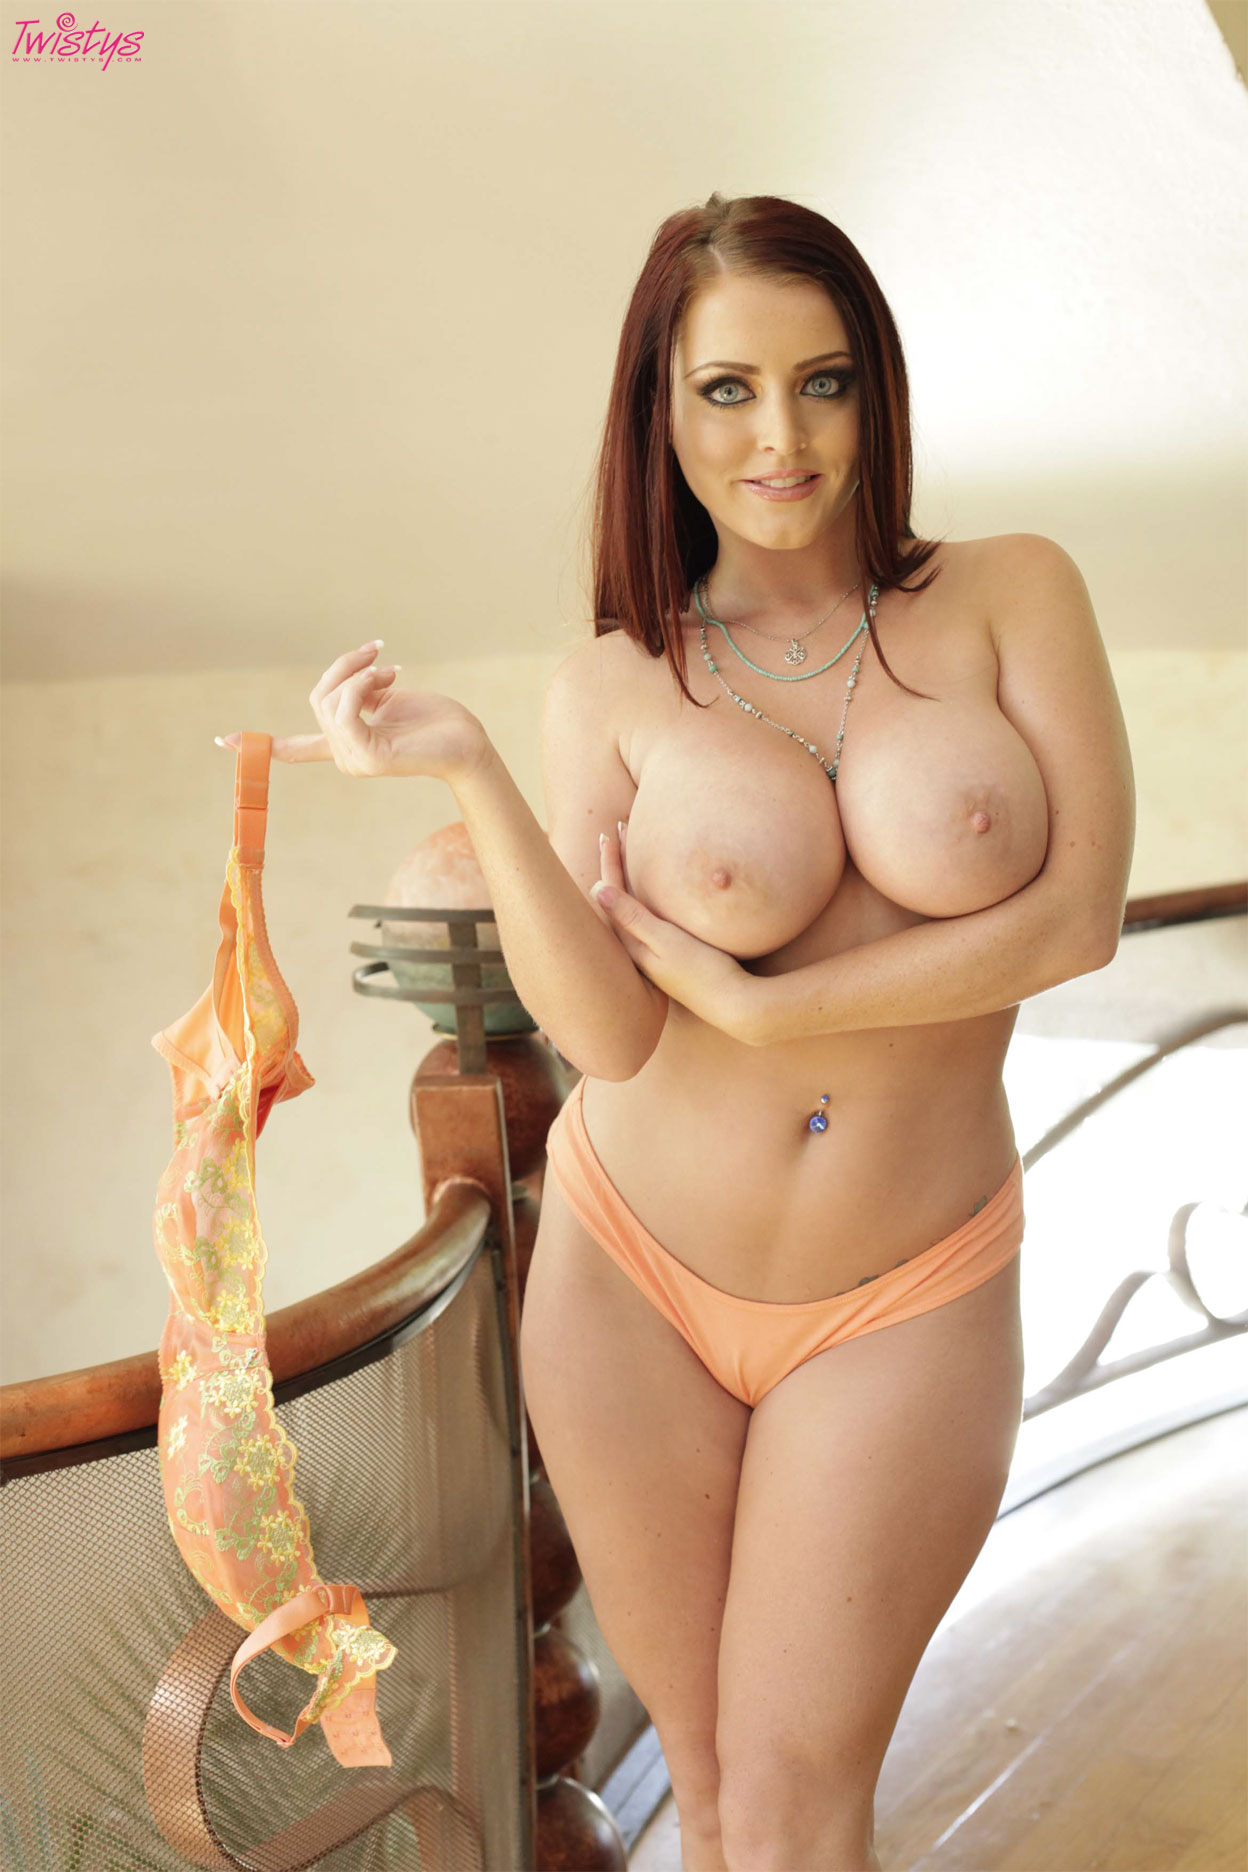 Big Boobed Sophie Dee Gets Fucked Porn Video Tube-pic7024